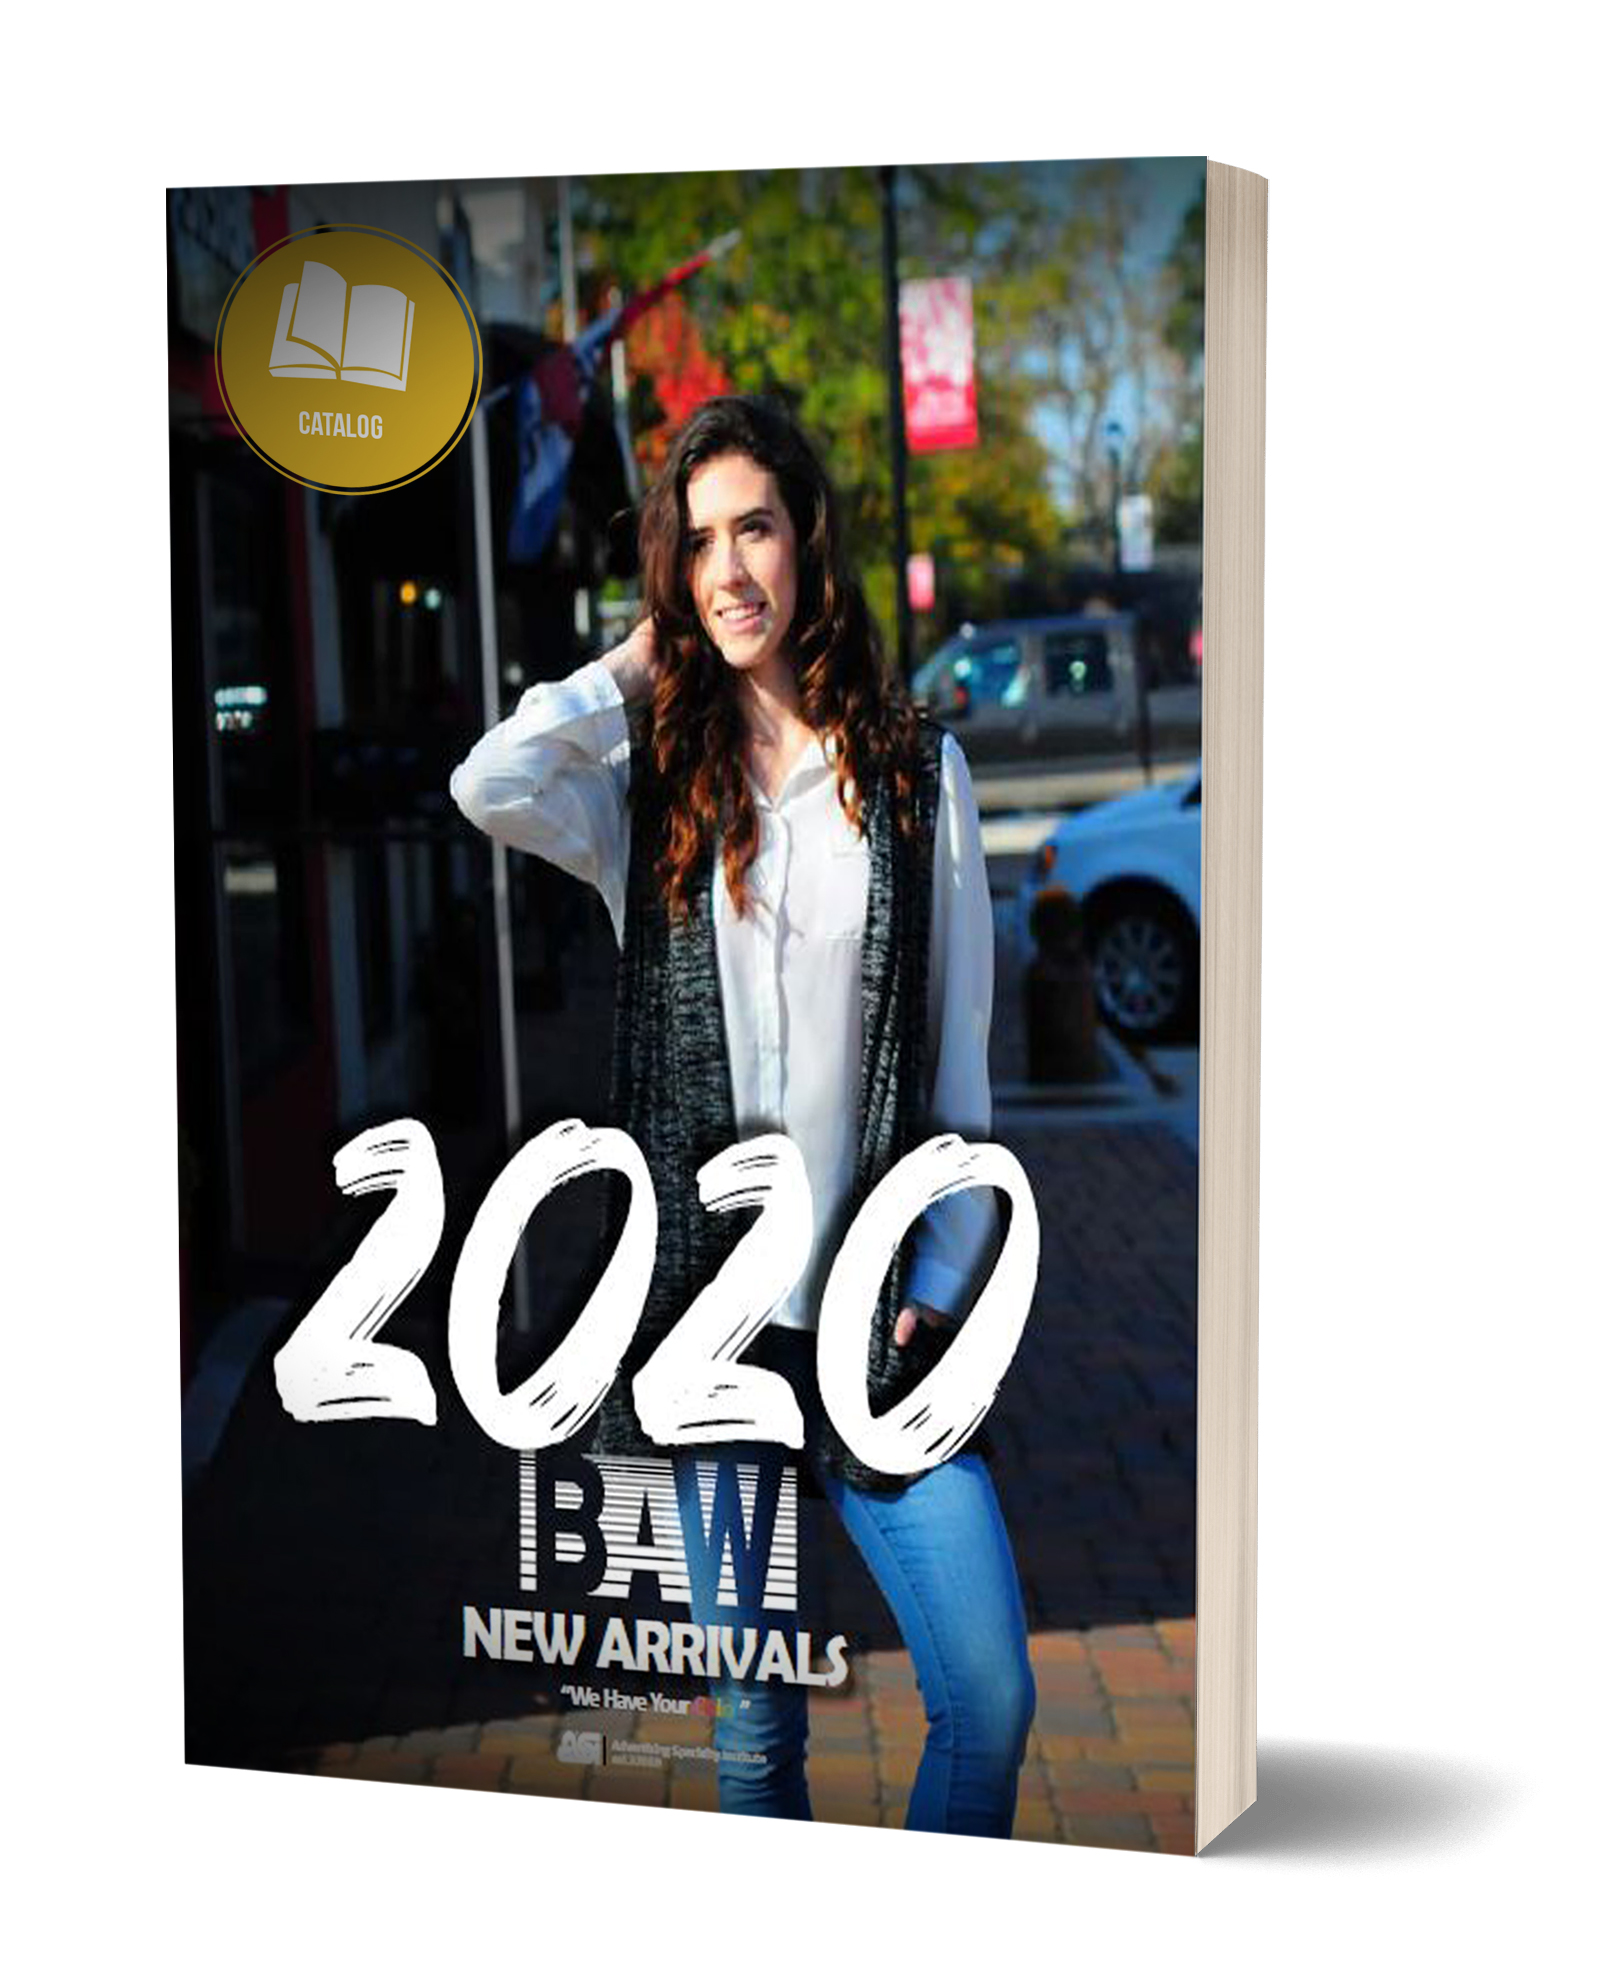 Click here to view 2020 BAW eCATALOG